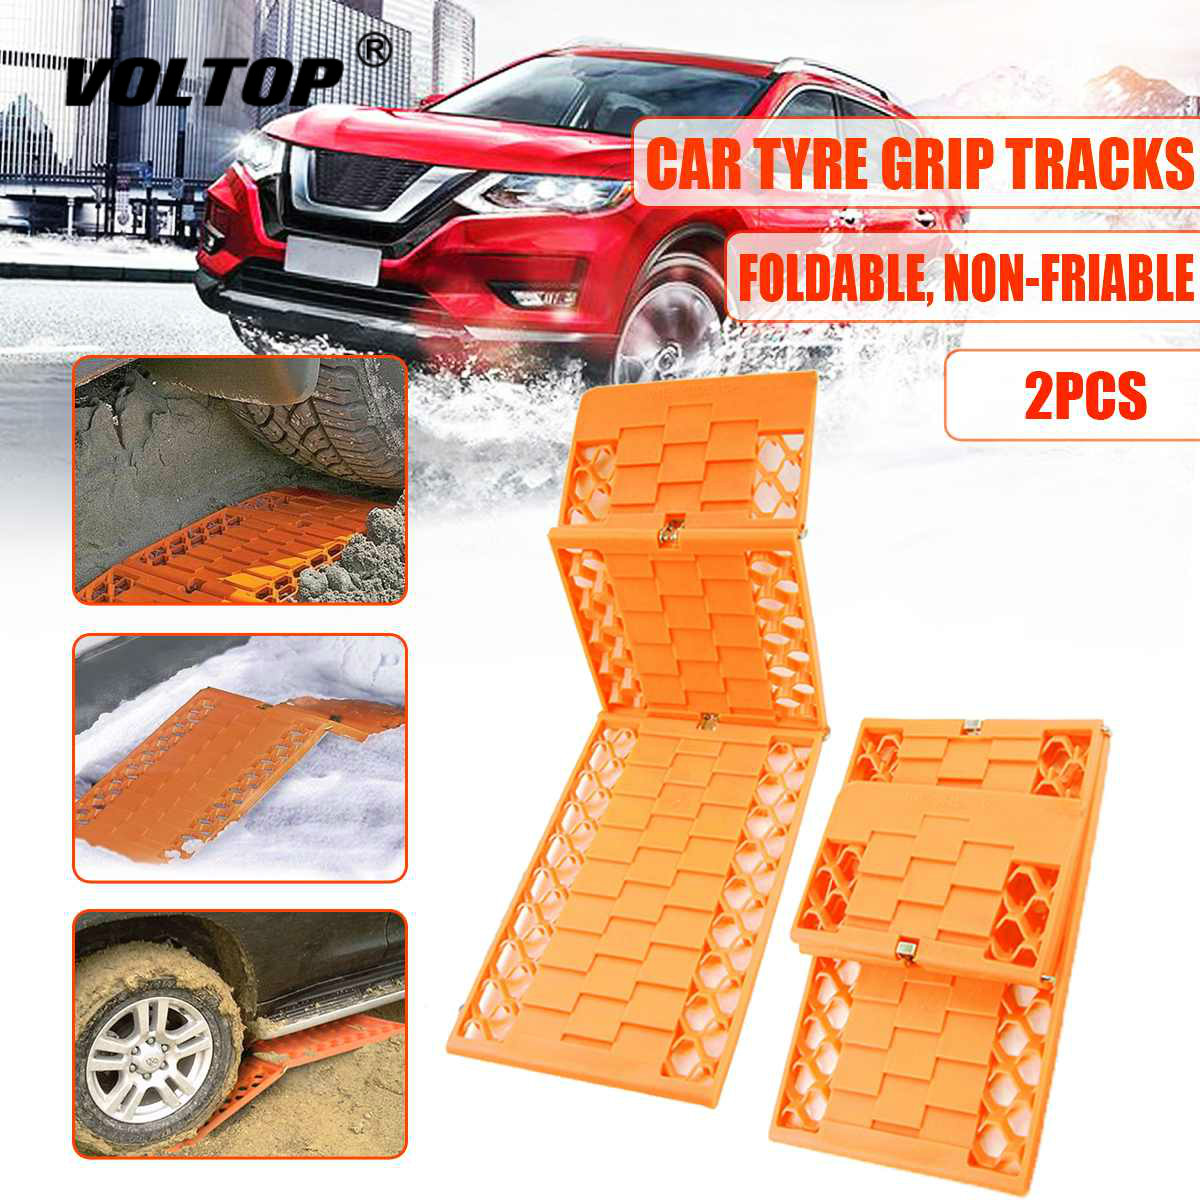 2Pcs Set Tyre Grip Tracks Car Security Snow Mud Sand Rescue Escaper Traction Tracks Mats Folding Rubber Car Rescue Mats in Snow Chains from Automobiles Motorcycles